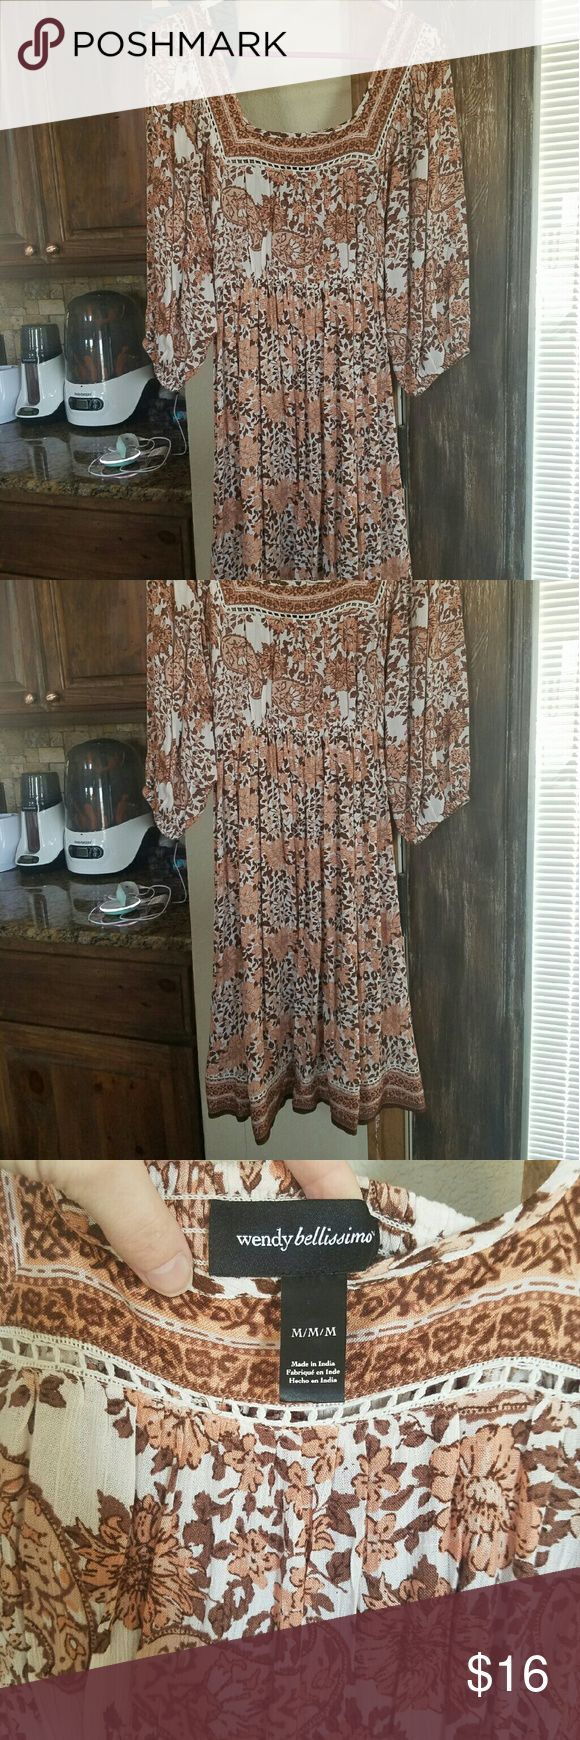 ideas about Brown Maternity Dresses on Pinterest Pregnancy